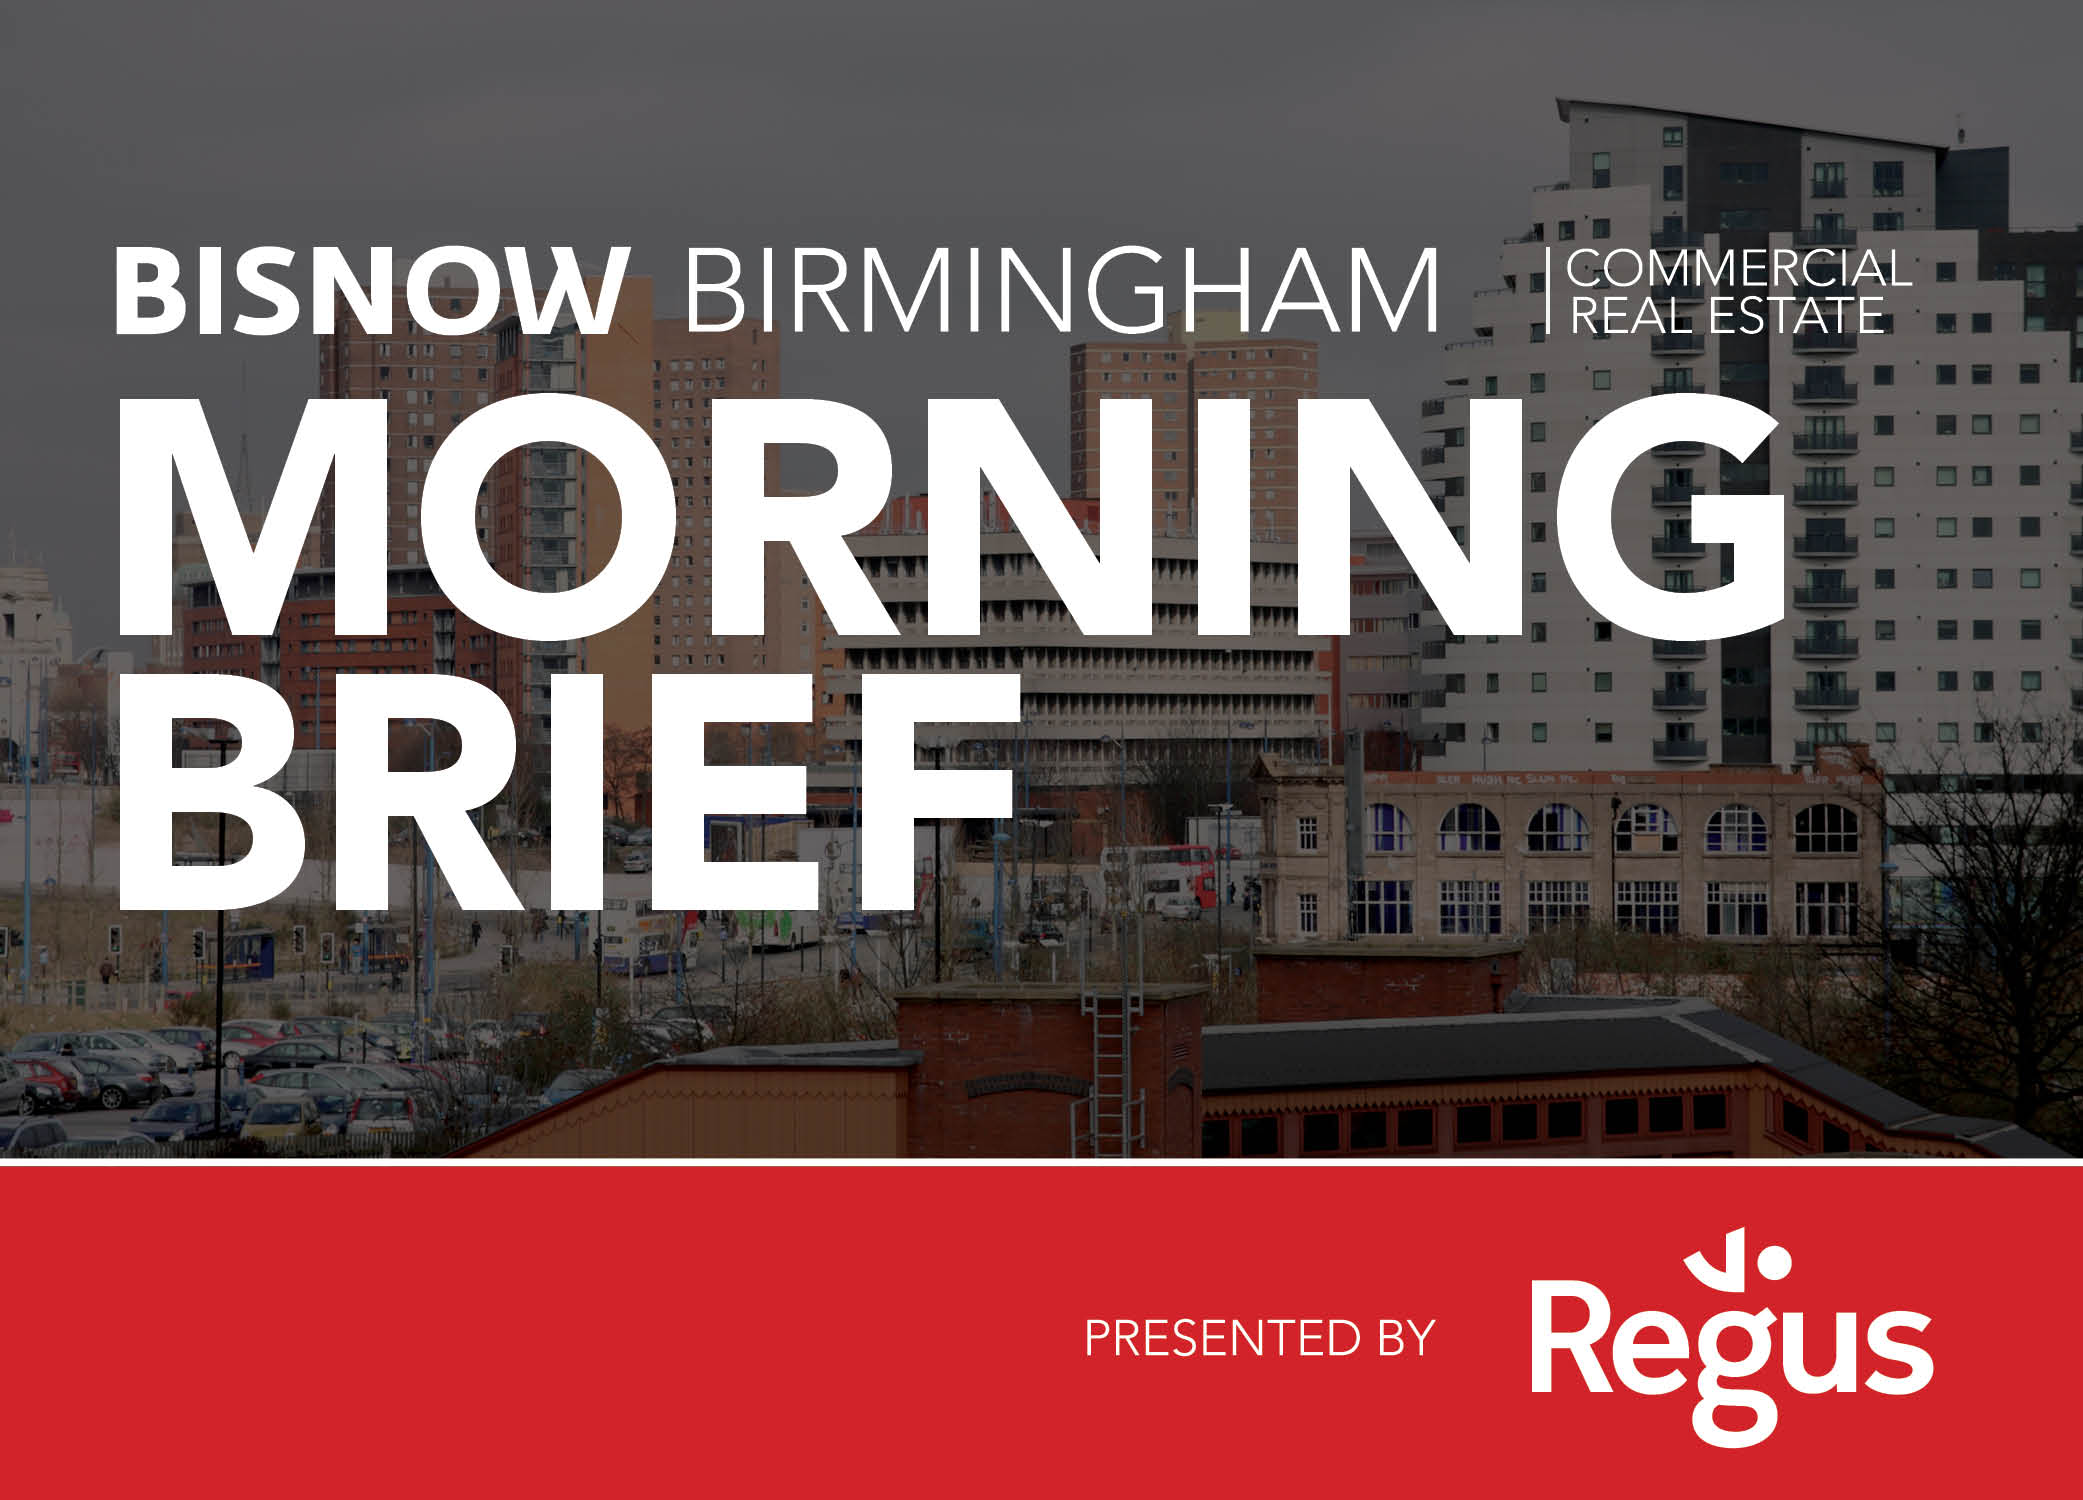 Bisnow Morning Brief Birmingham